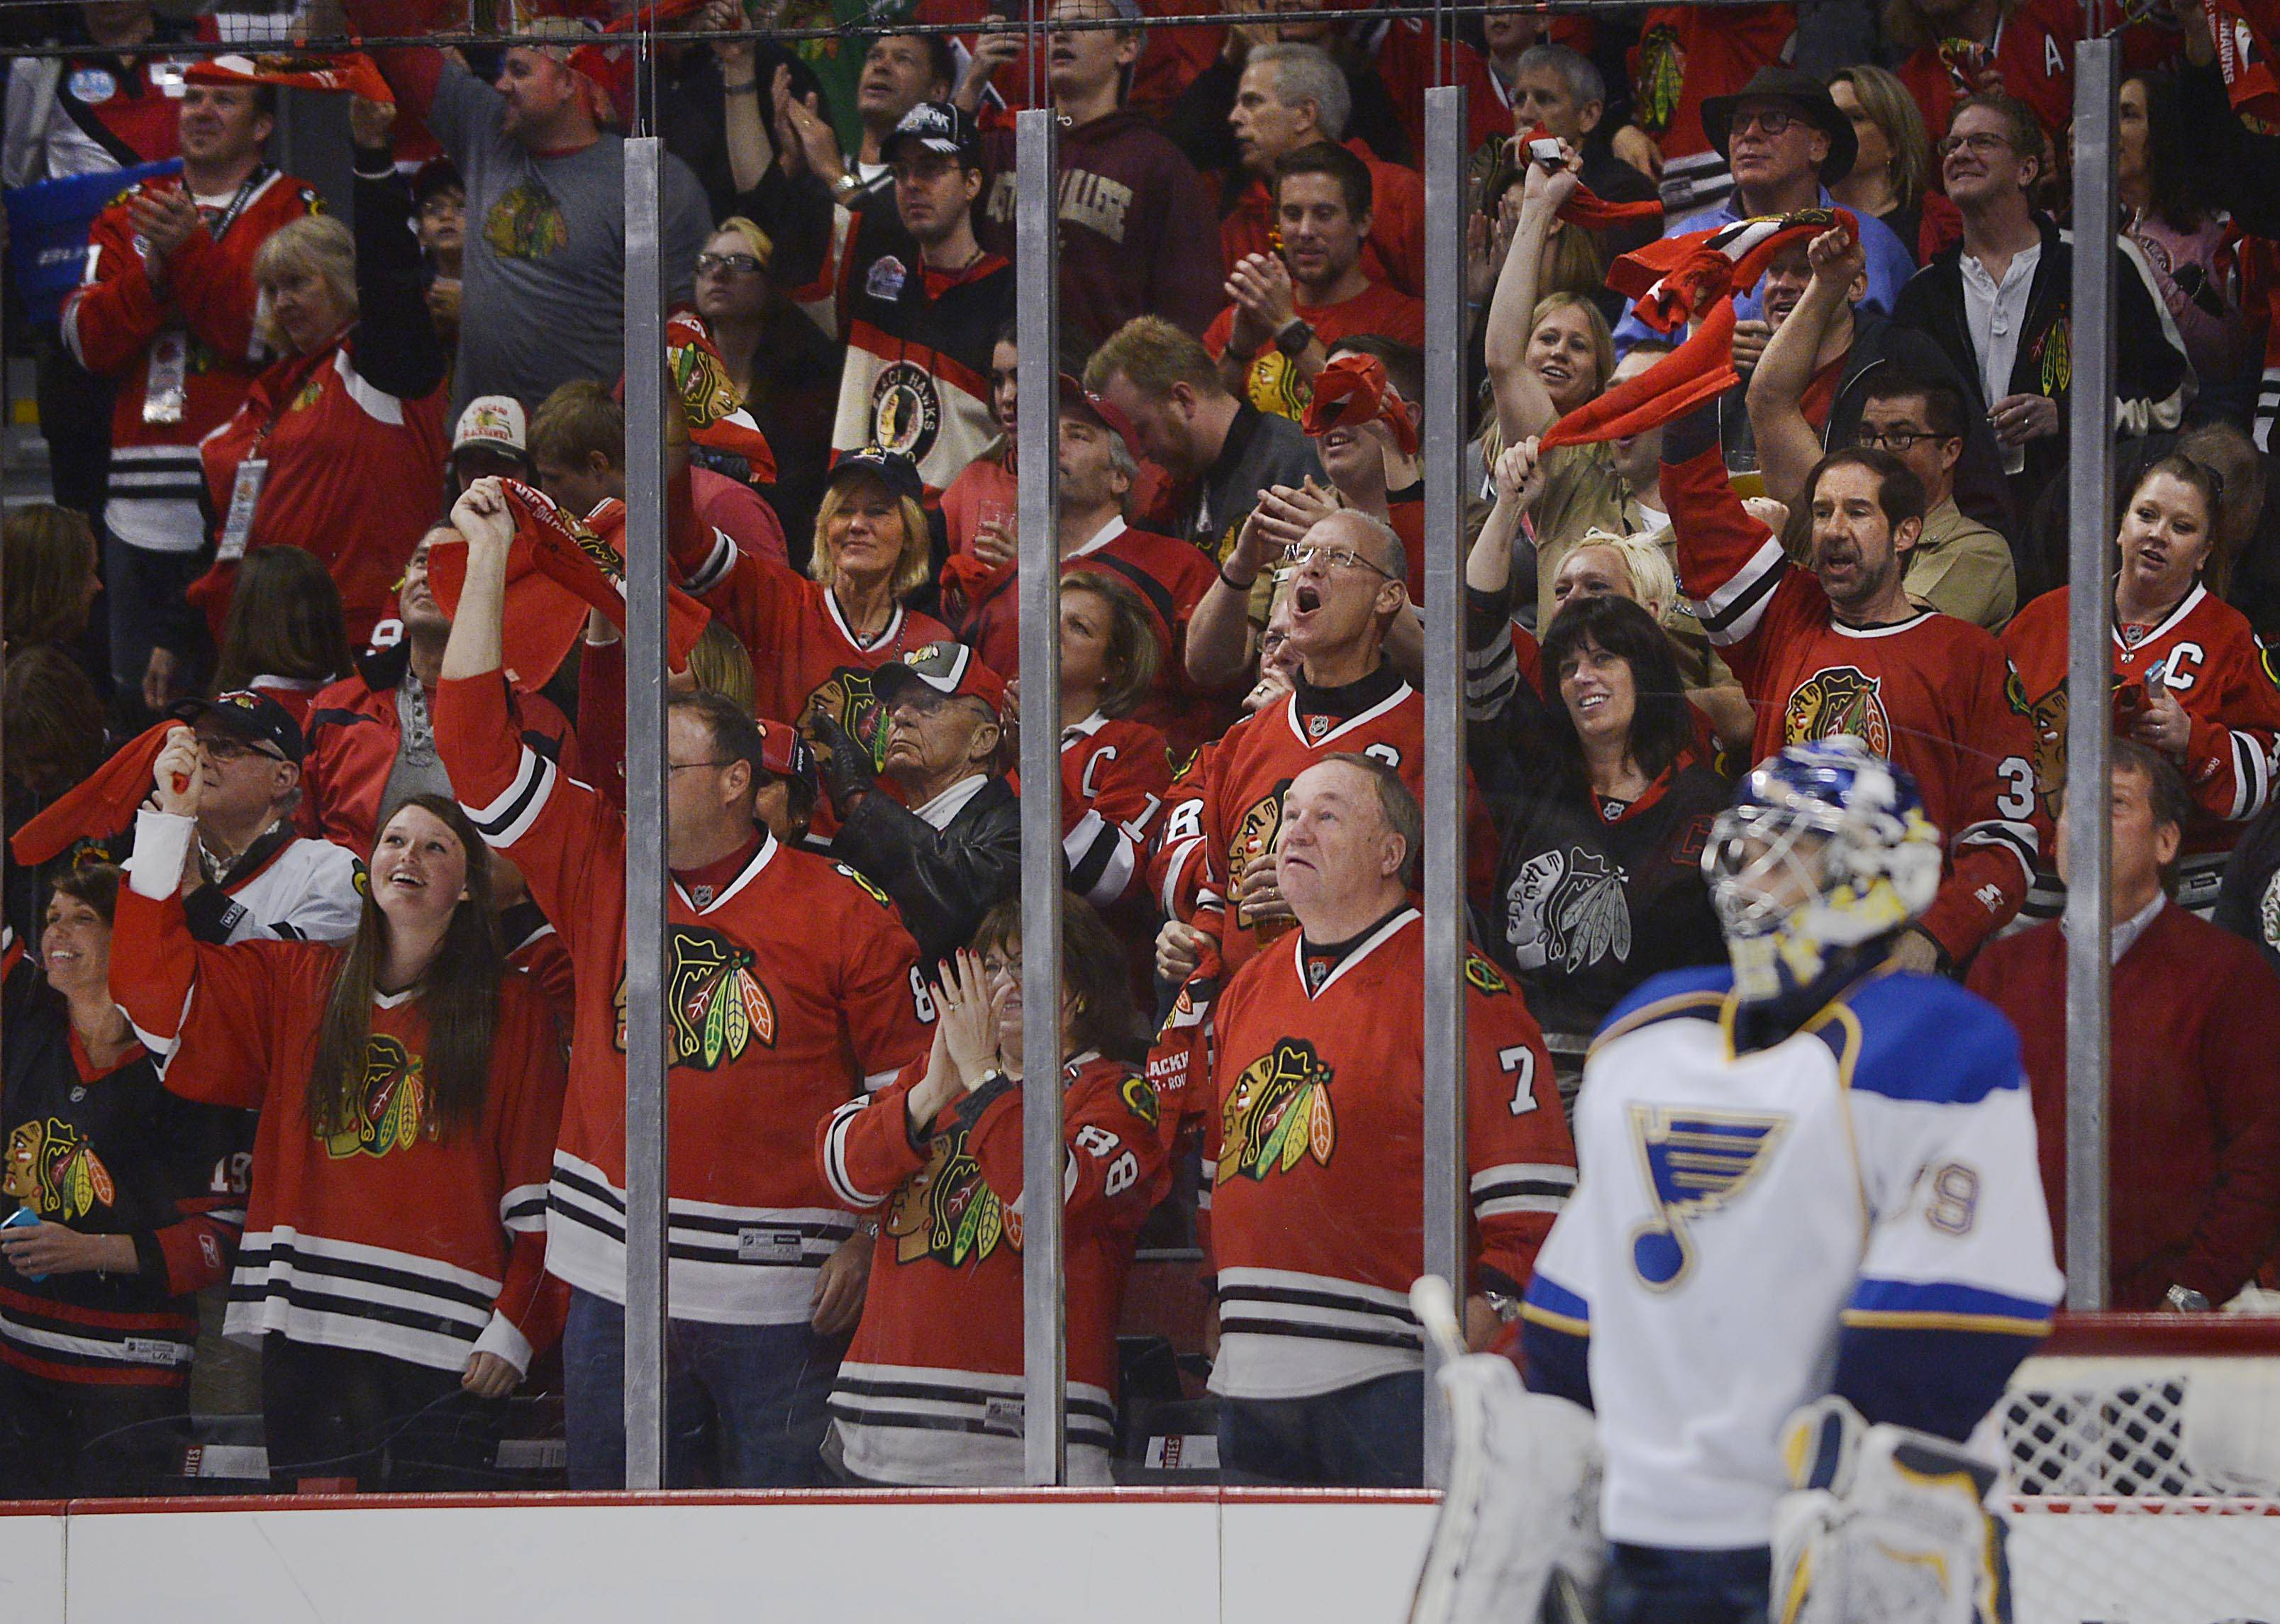 John Starks/jstarks@dailyherald.com The home team fans celebrate Brian Bickell's goal in the first period as St. Louis Blues goalkeeper Ryan Miller stands motionless Sunday in Game 6. The Hawks won four straight game to capture the series 4-2 and move on in the playoffs.